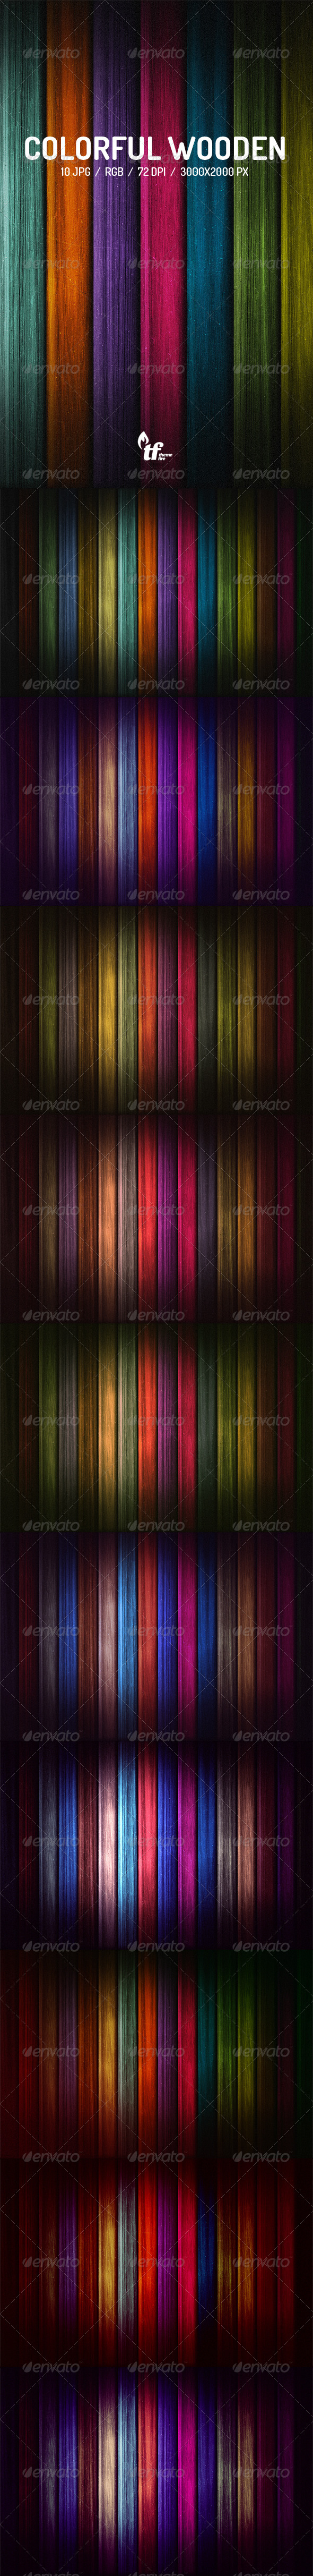 GraphicRiver Colorful Wooden Backgrounds 7896491